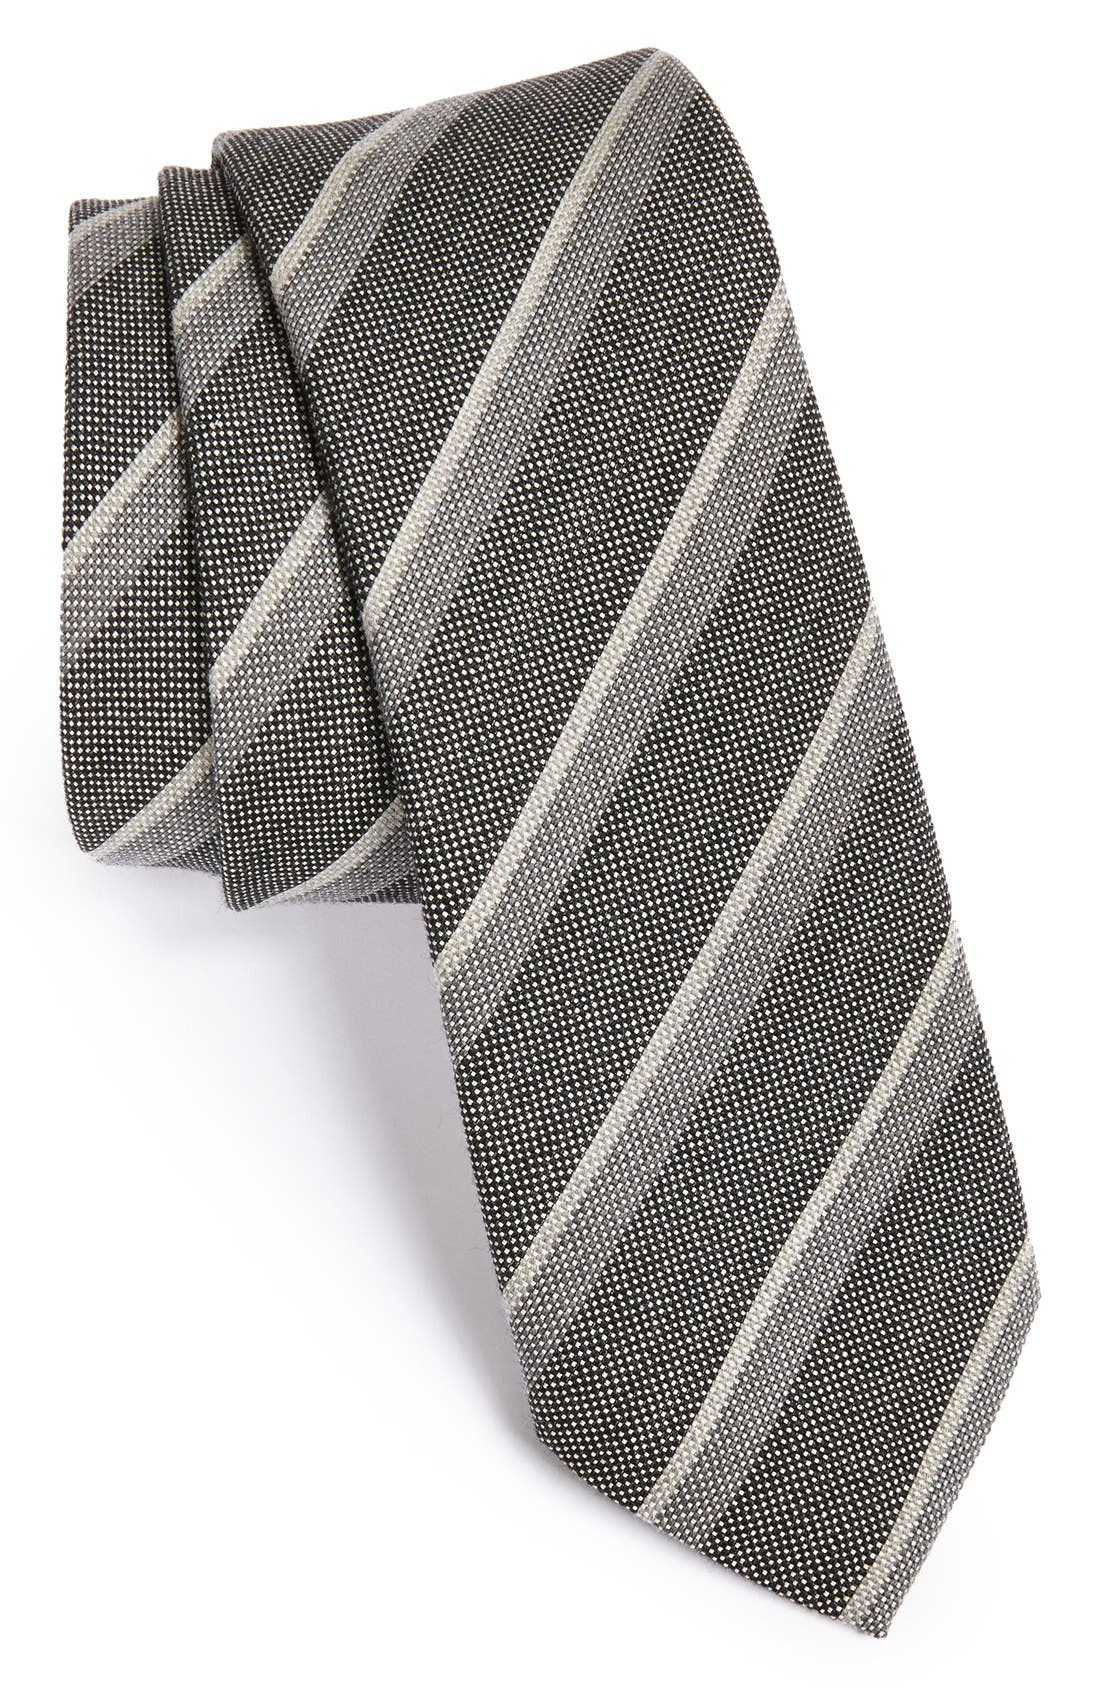 Main Image - John Varvatos Collection Woven Cotton Blend Tie